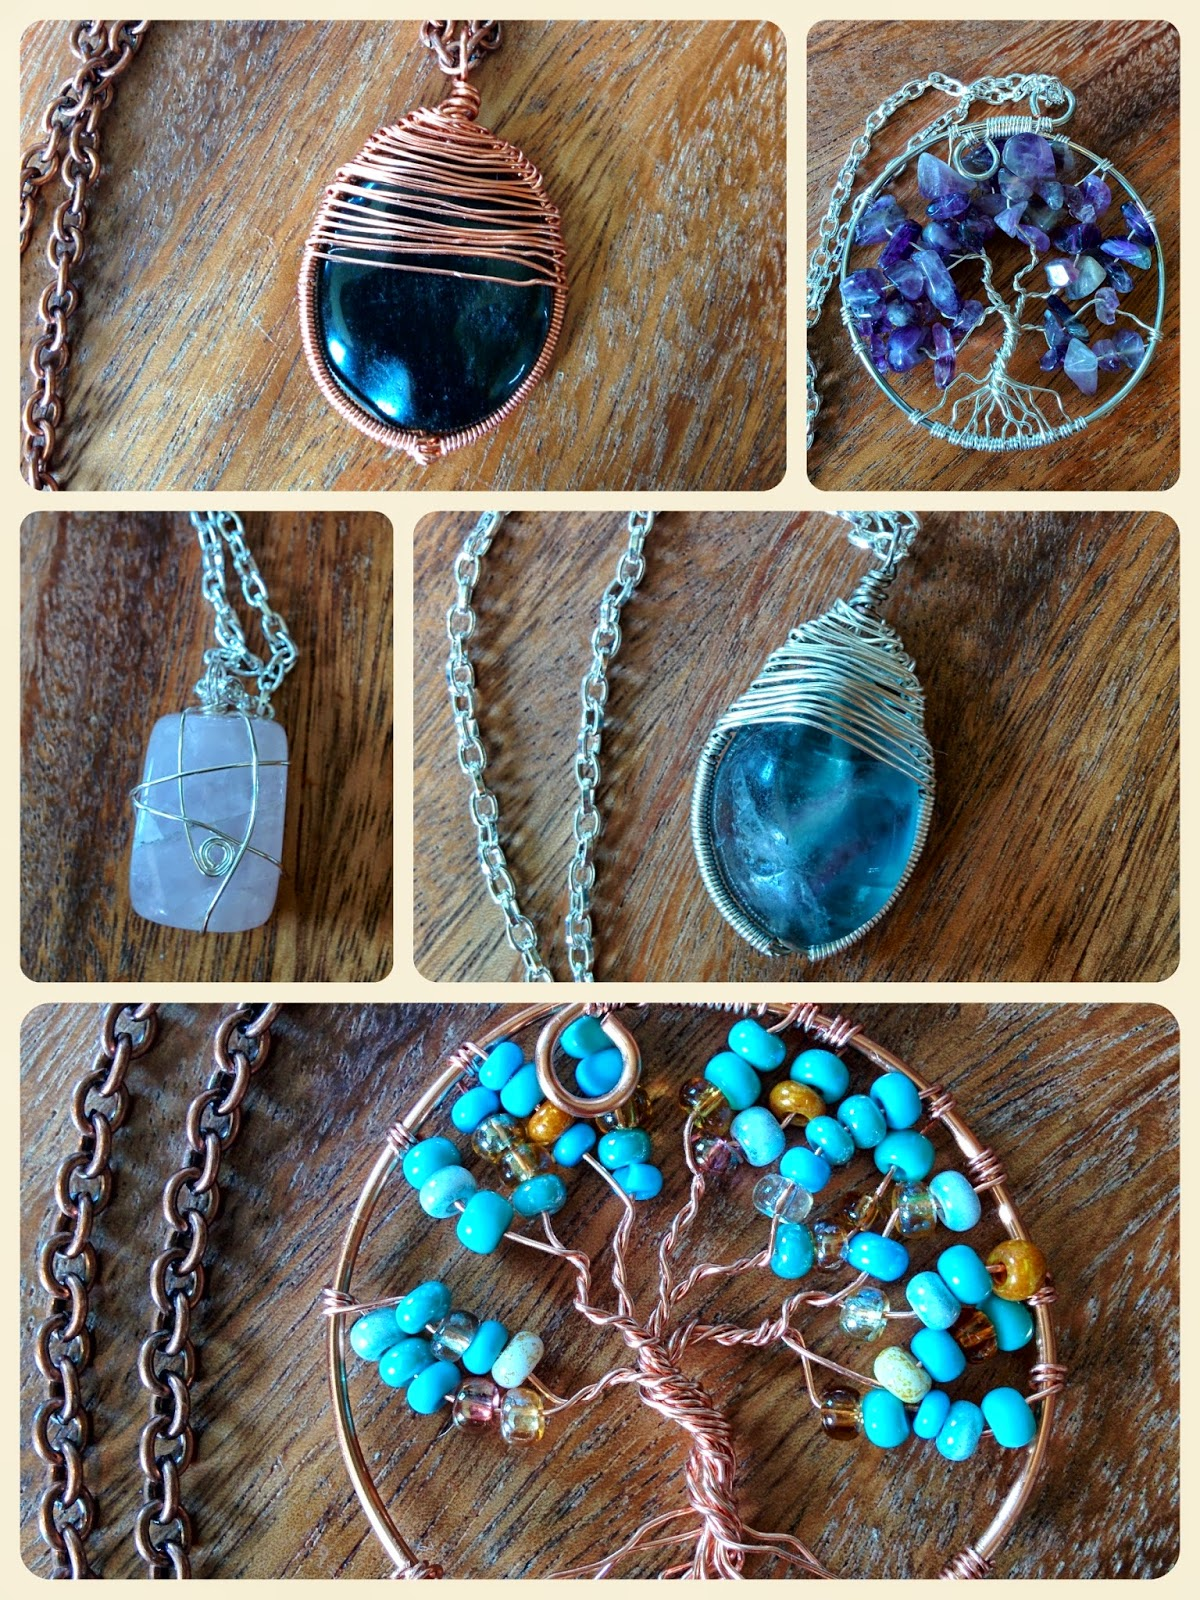 handmade wire jewelry by tinsnips & scissors